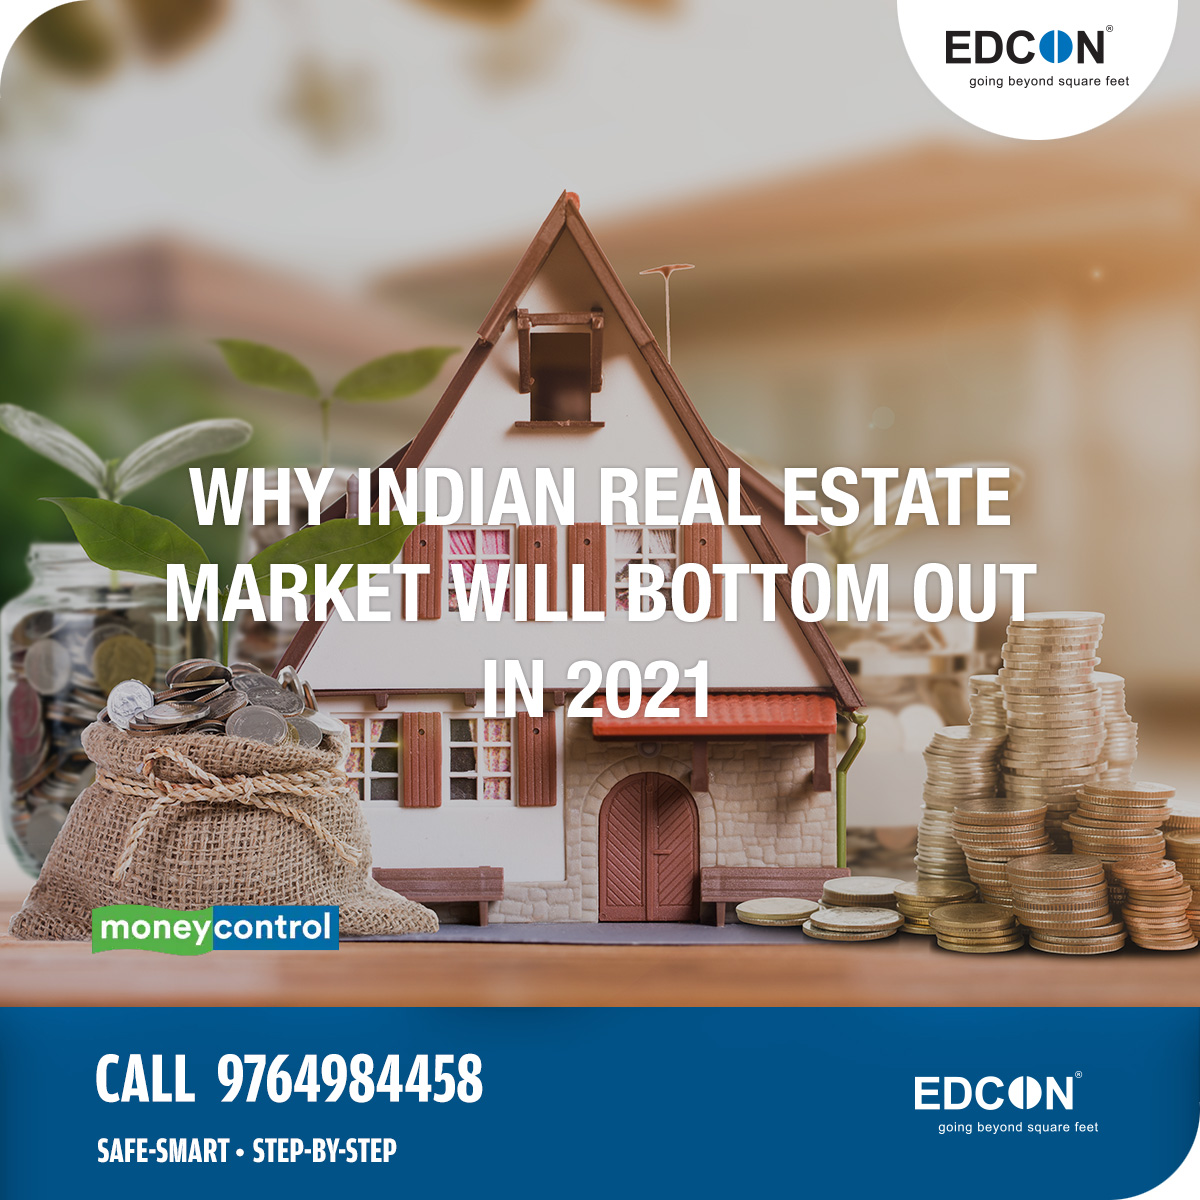 Why Indian real estate market will bottom out in 2021